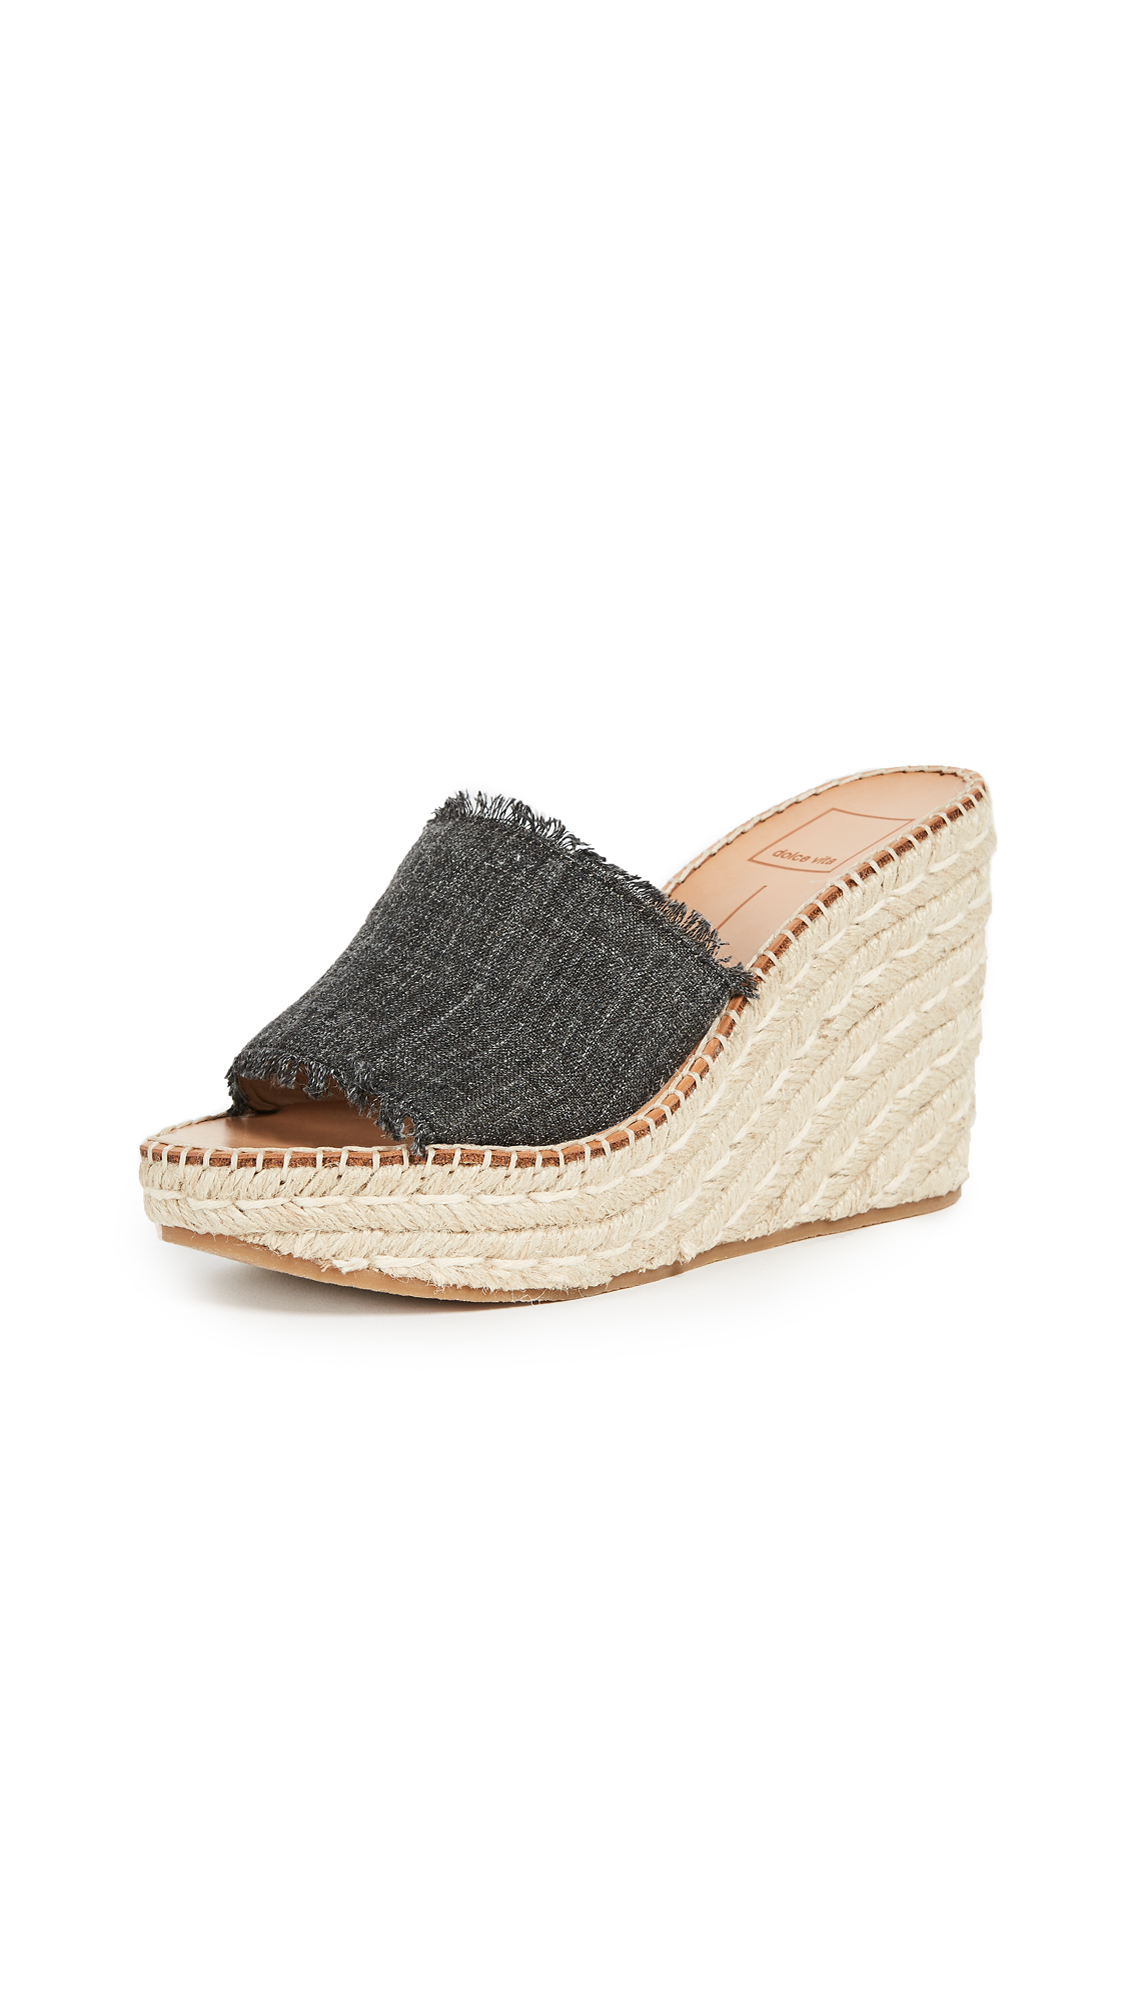 Dolce Vita Pim Wedge Sandals - Ash